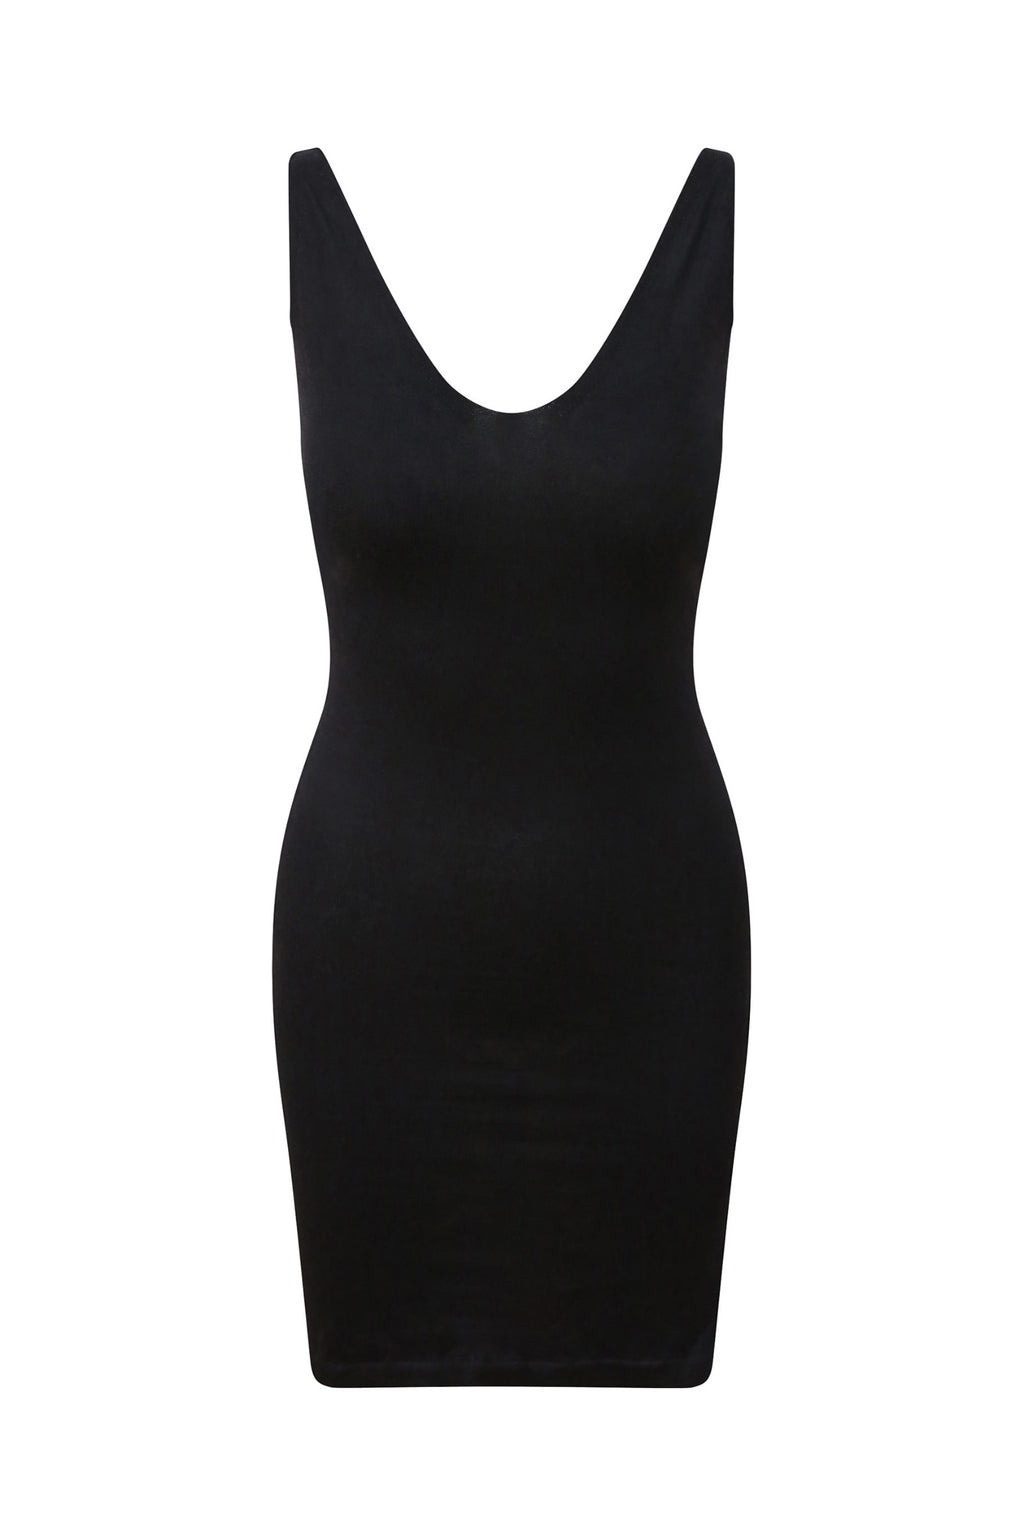 Black Cashmere Bodycon Dress